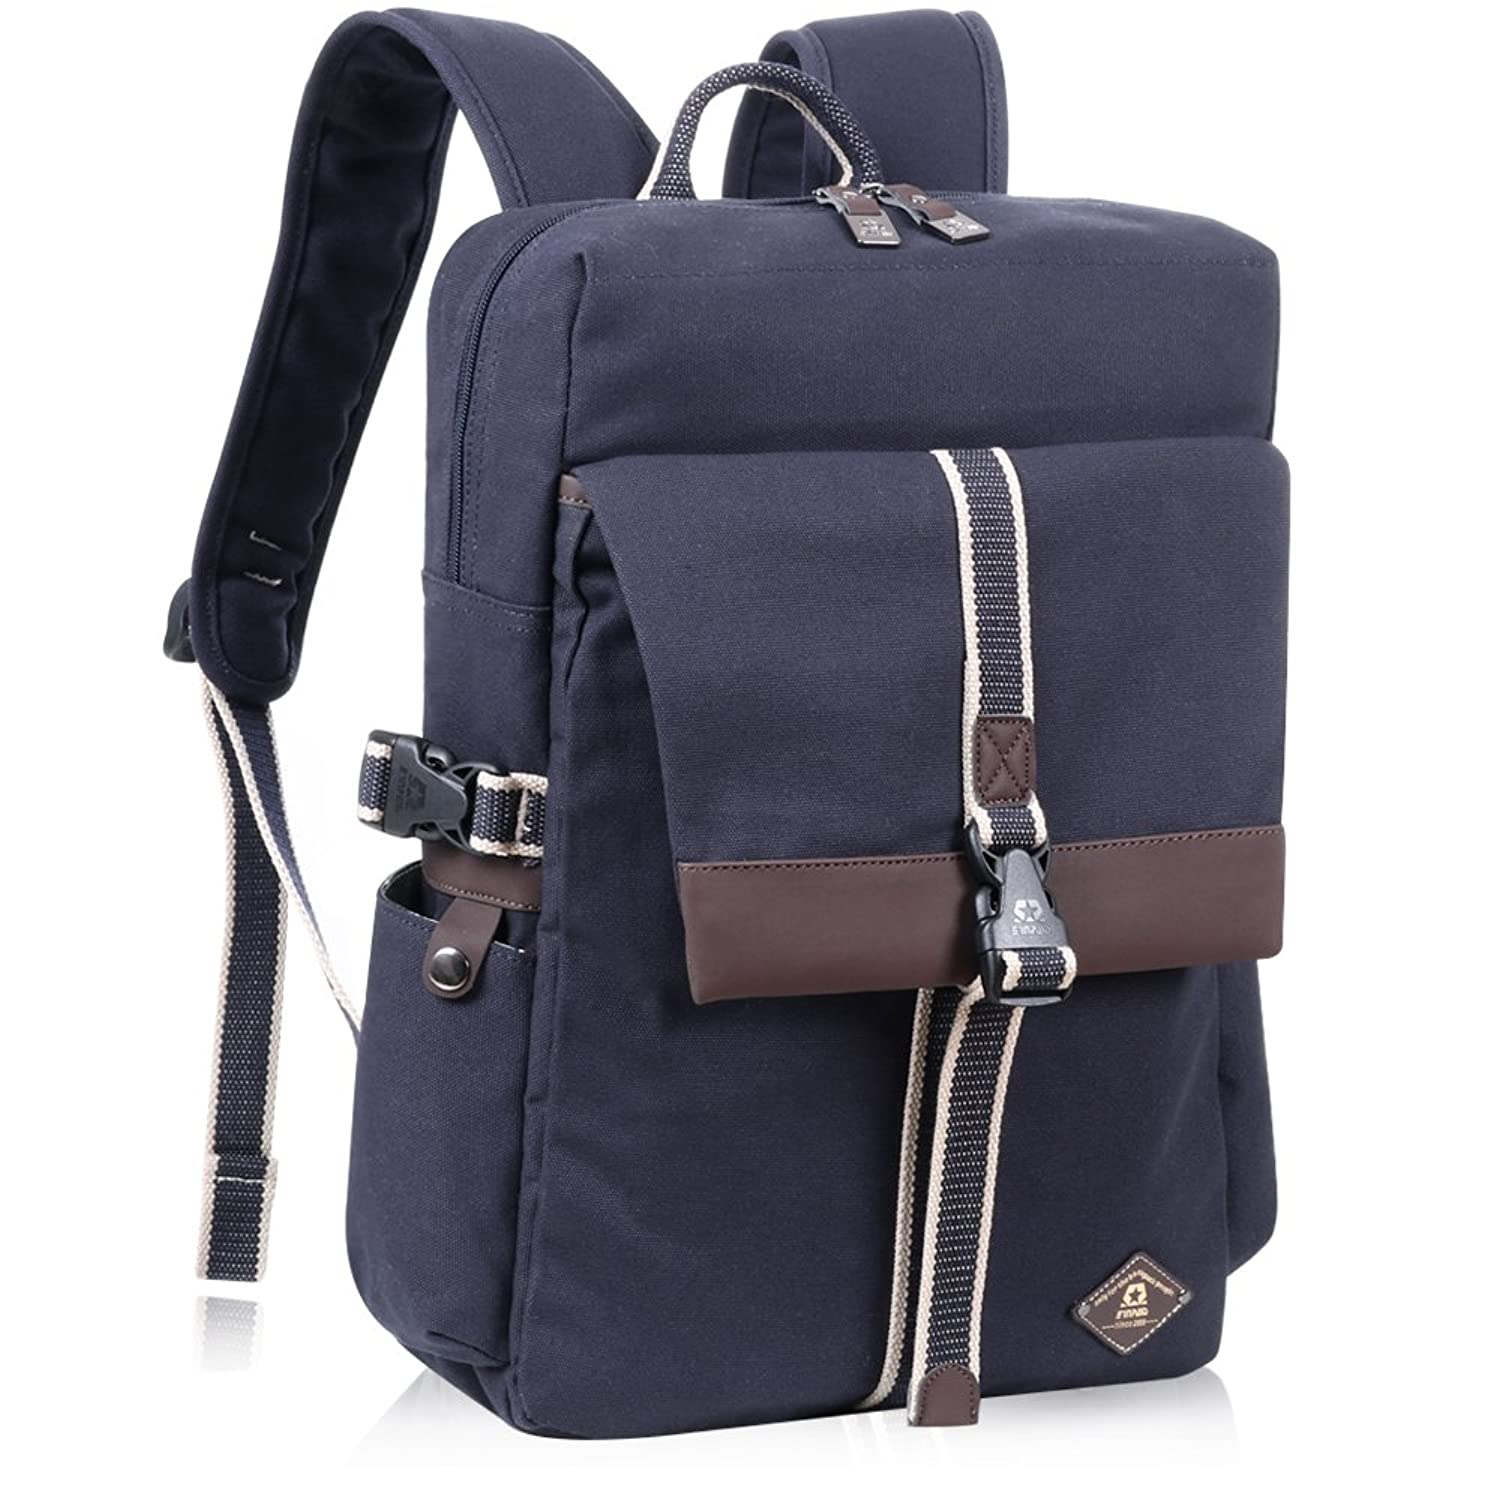 4d919a5ff3a8 リュック 人気 通学 バックパック キャンバス 男子 SINPAID backpack メンズ 学生 リュックサック 帆布 遠足 大容量 高校生